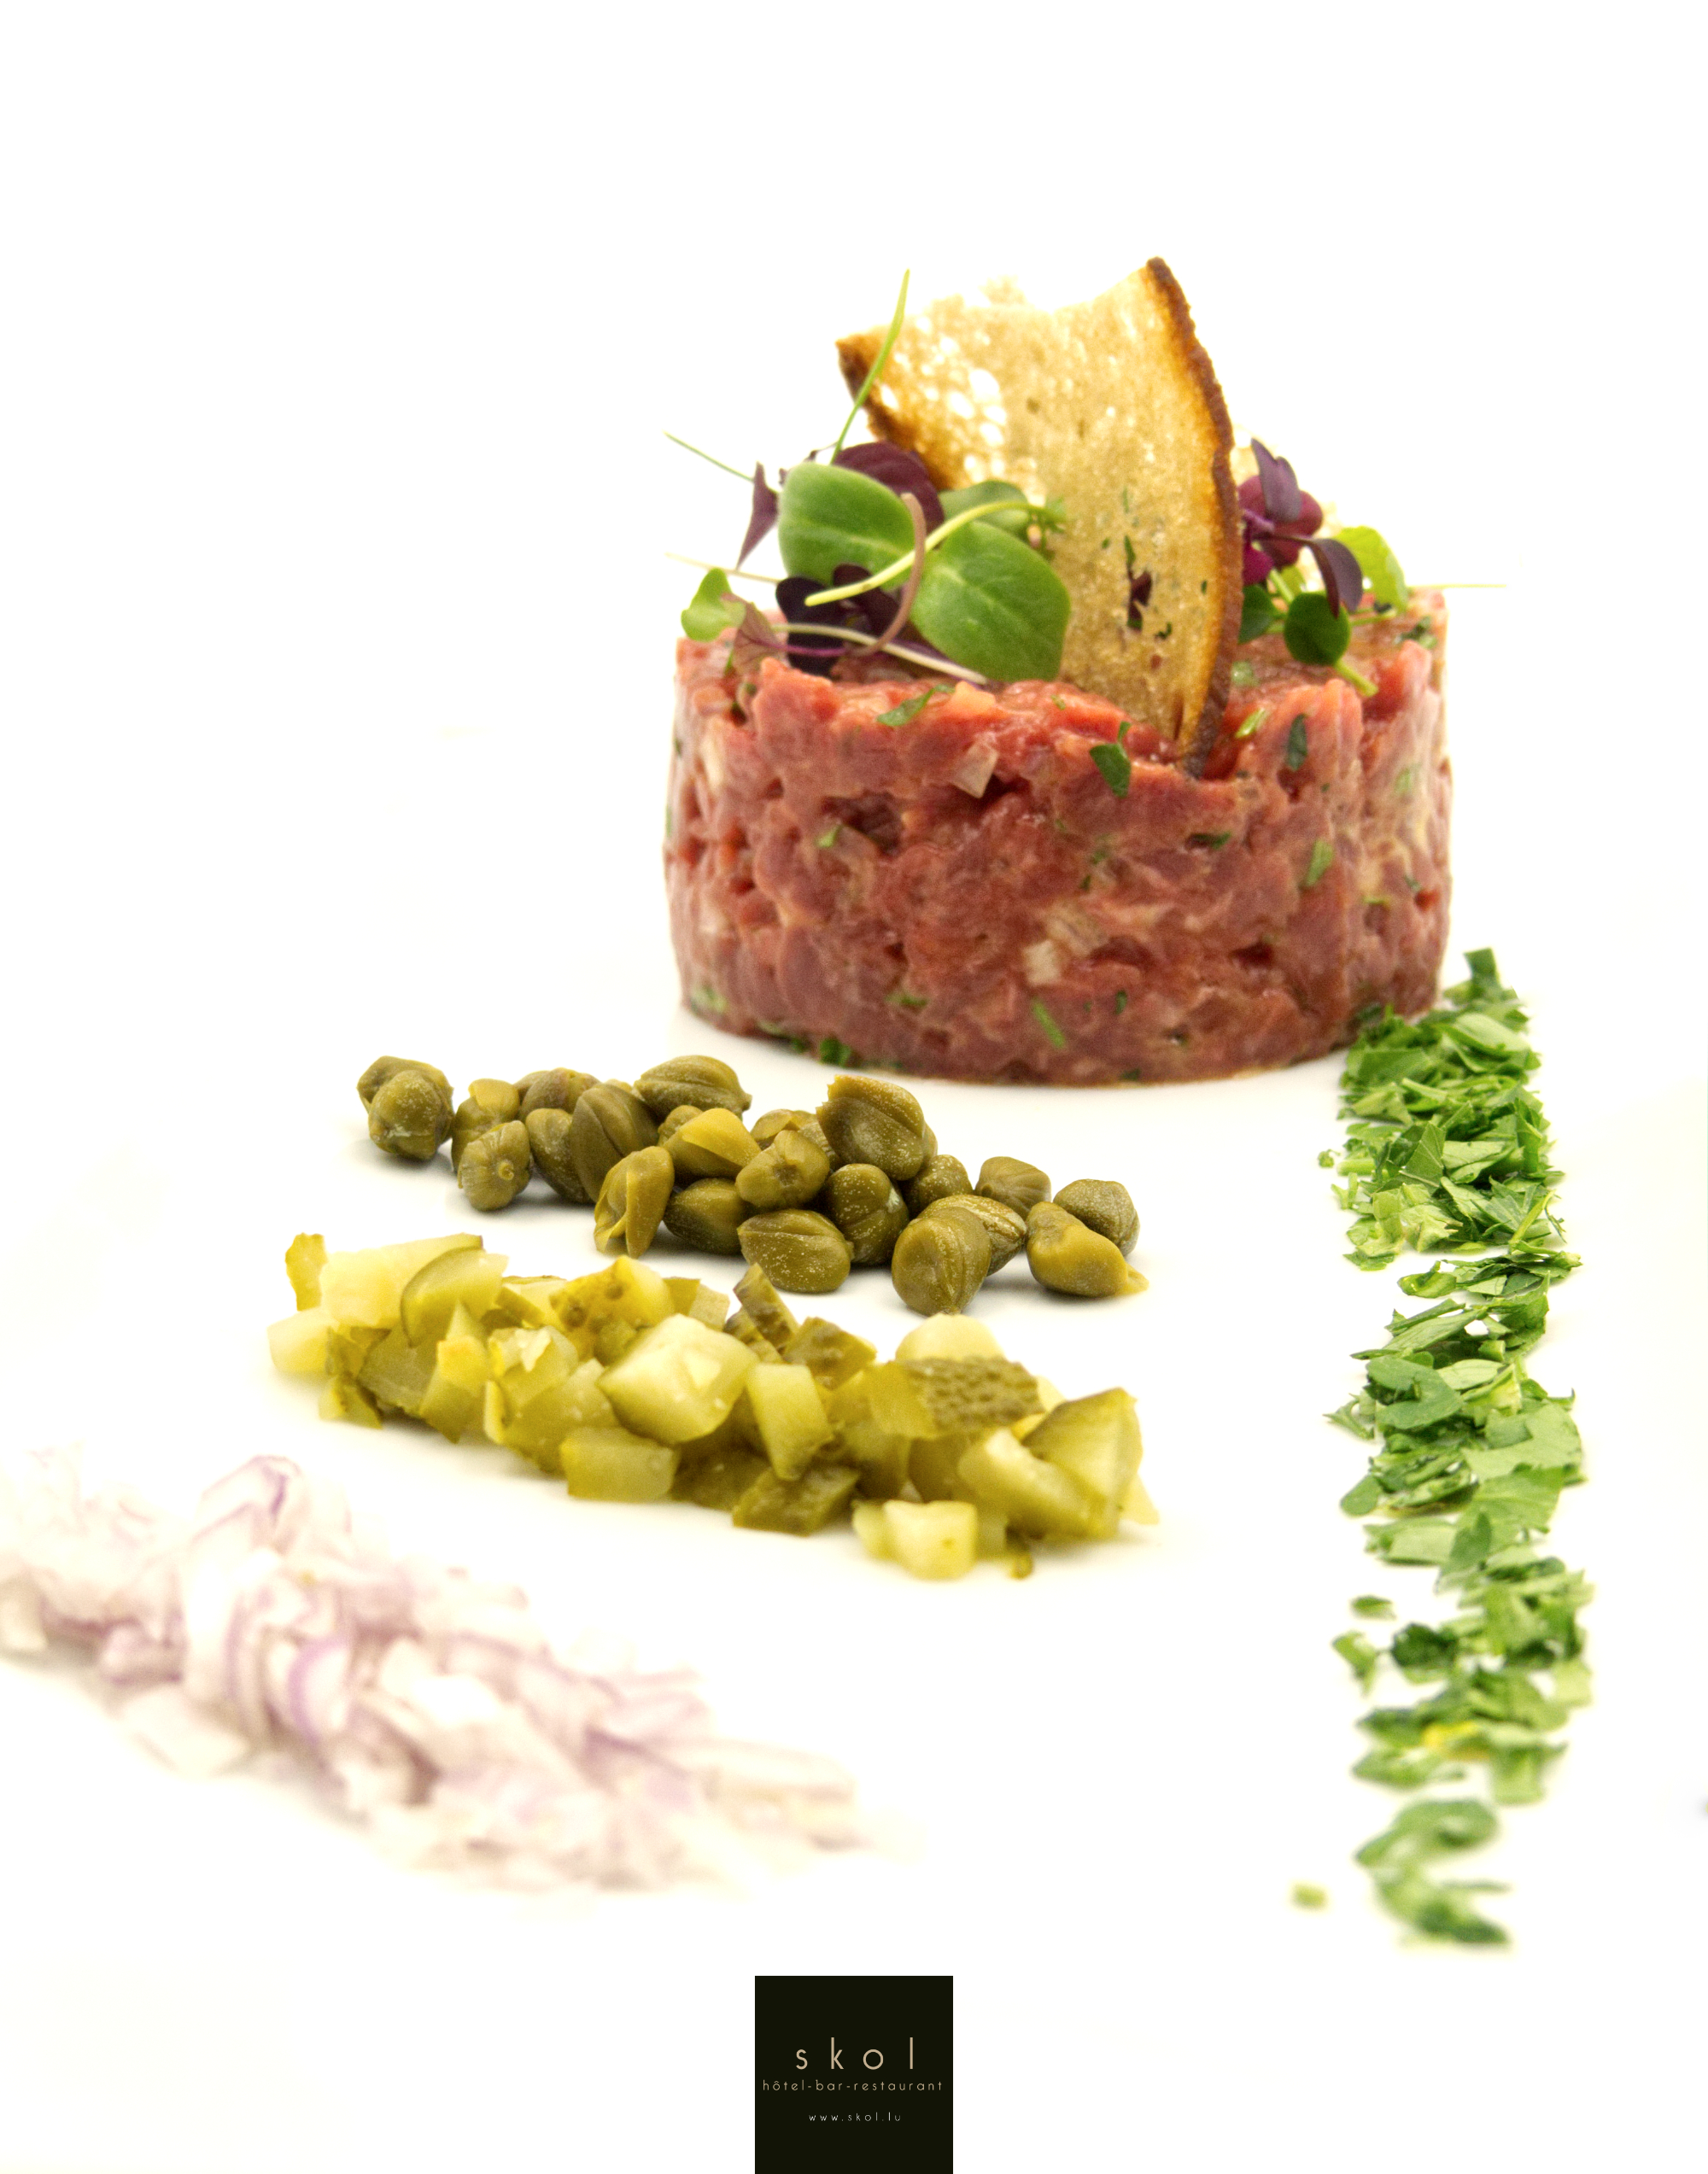 Photo - tartare de boeuf